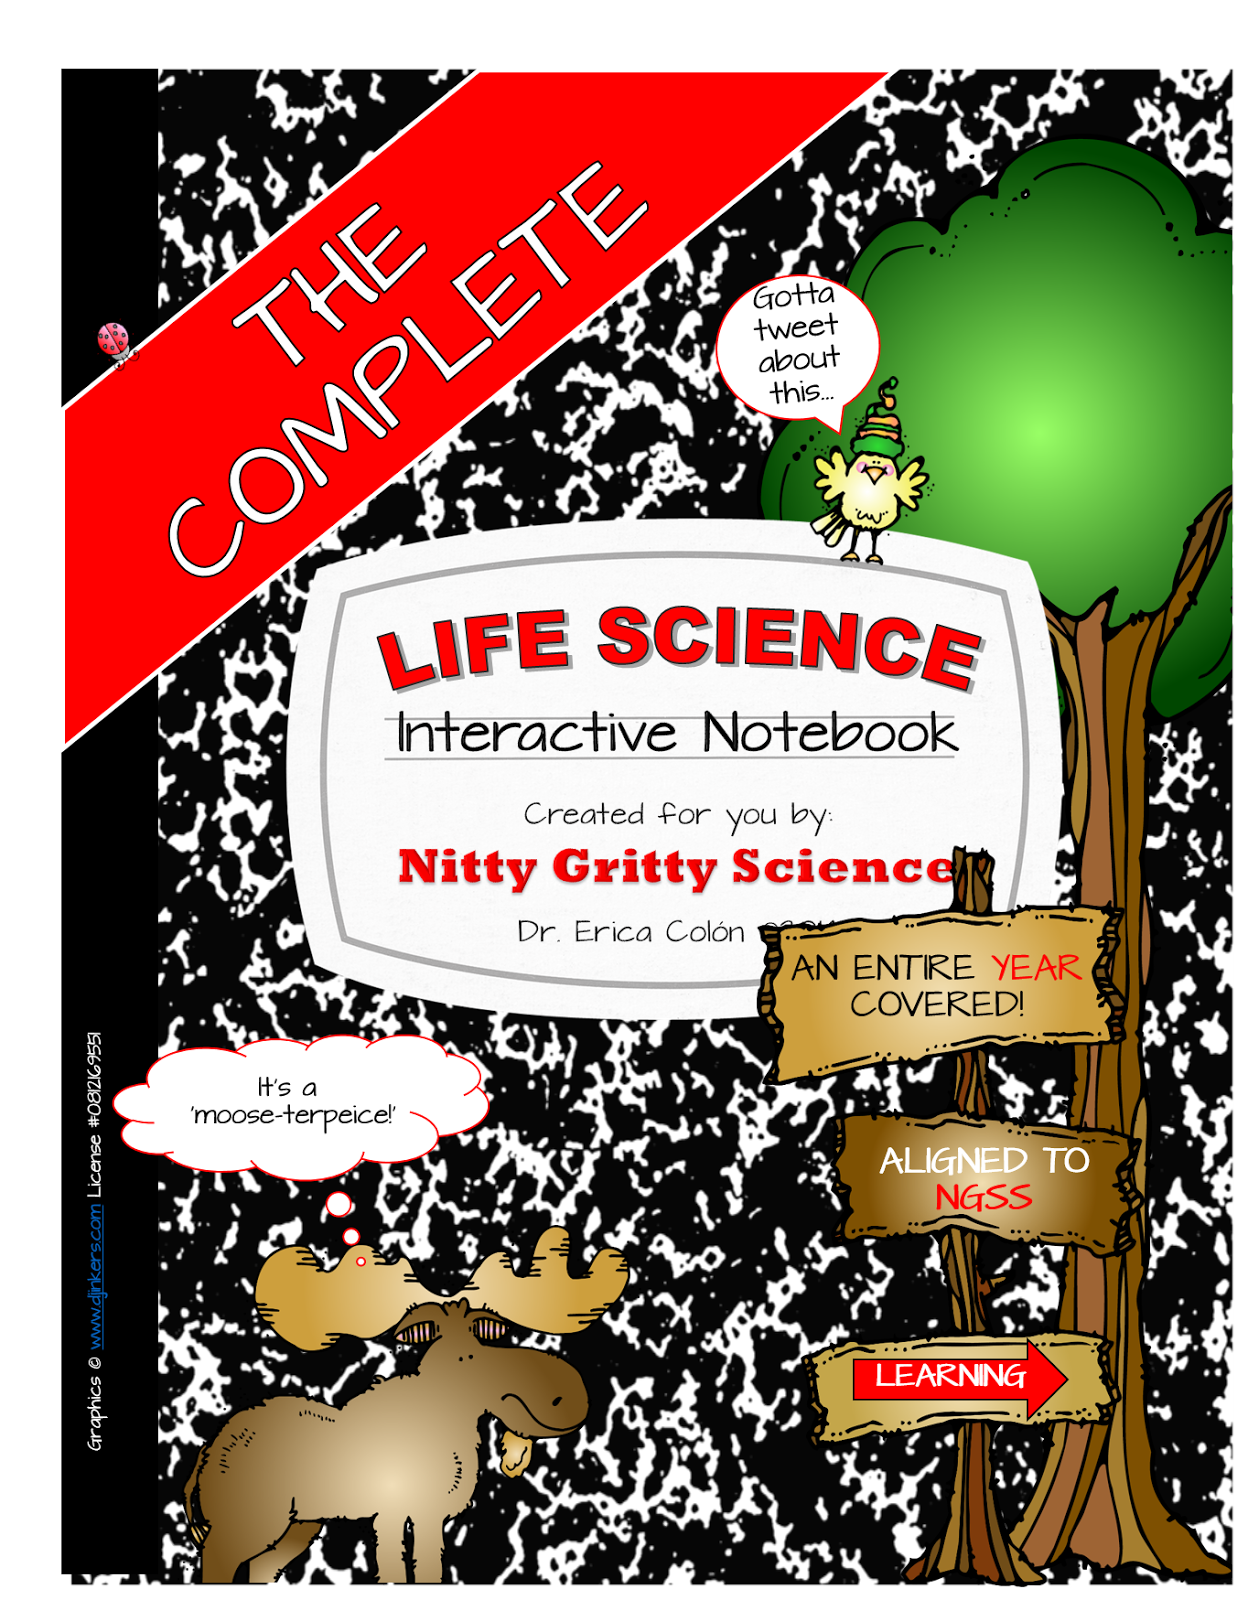 It's finally here!! The Complete Life Science Interactive Notebook that covers an